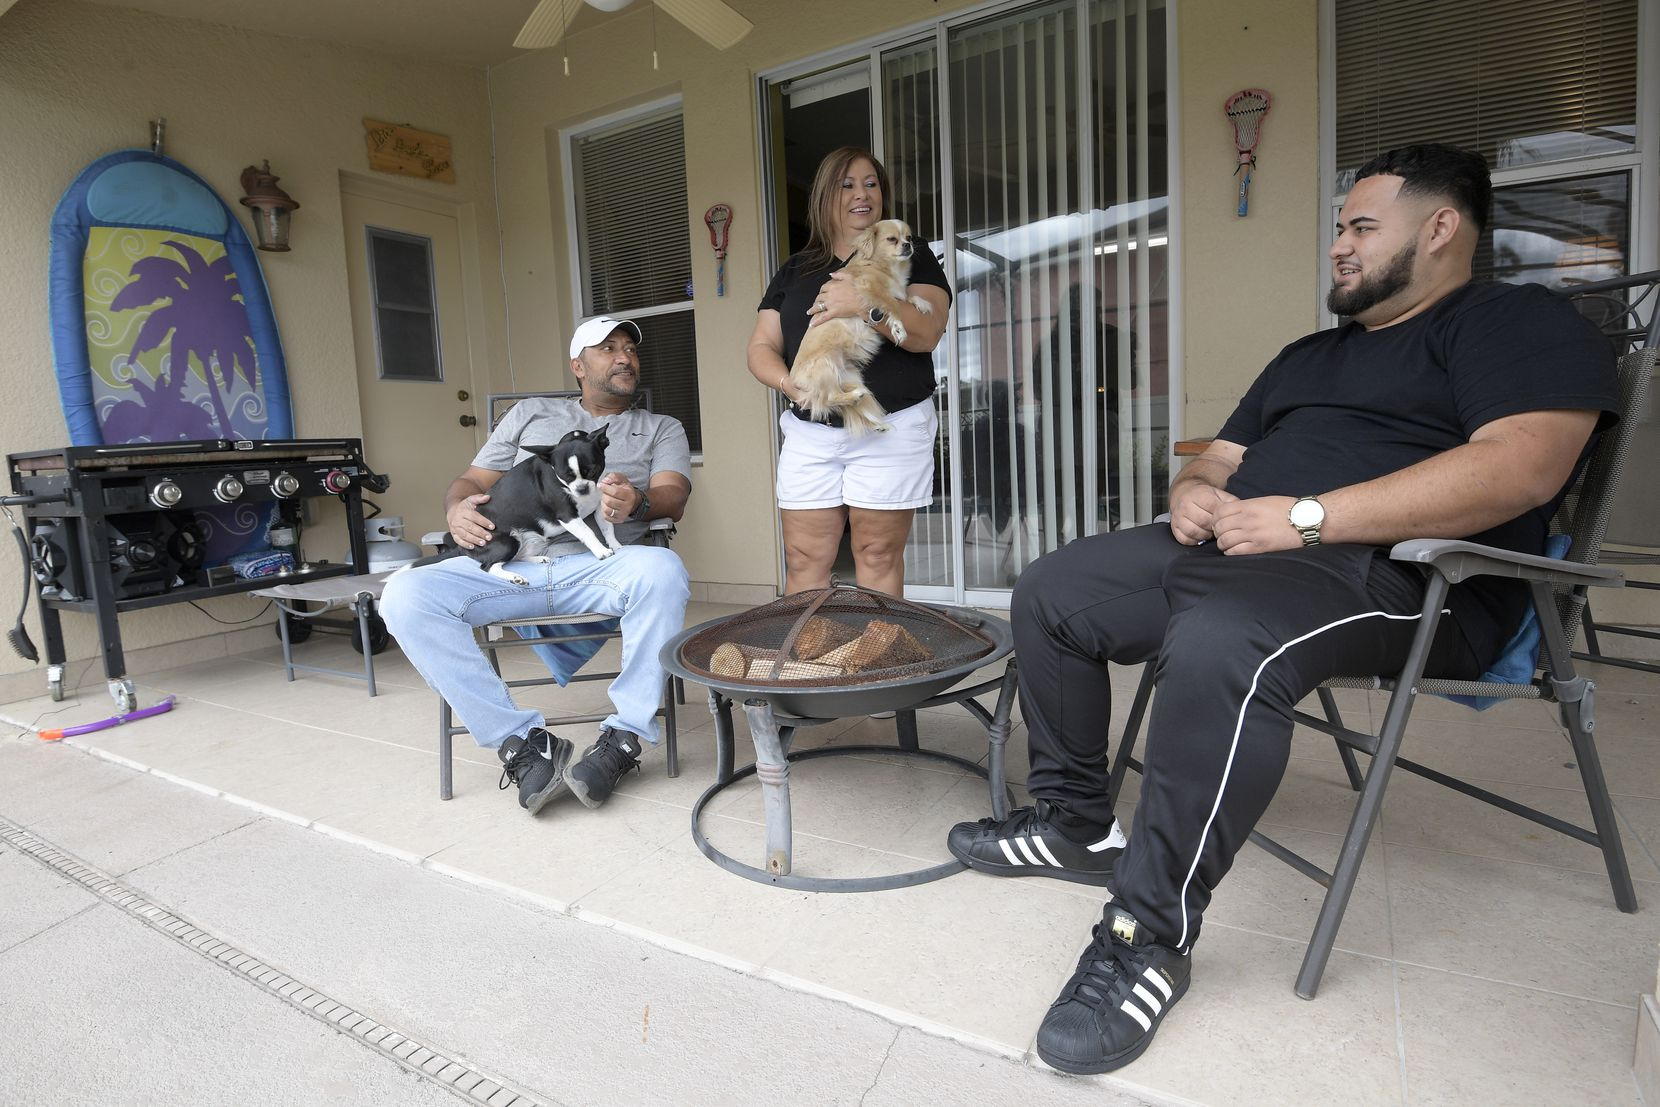 Pam Lopez said her son Brandon was born and raised in Greenville but now must make a new home in central Florida with her and his stepfather, Ruben Lopez.